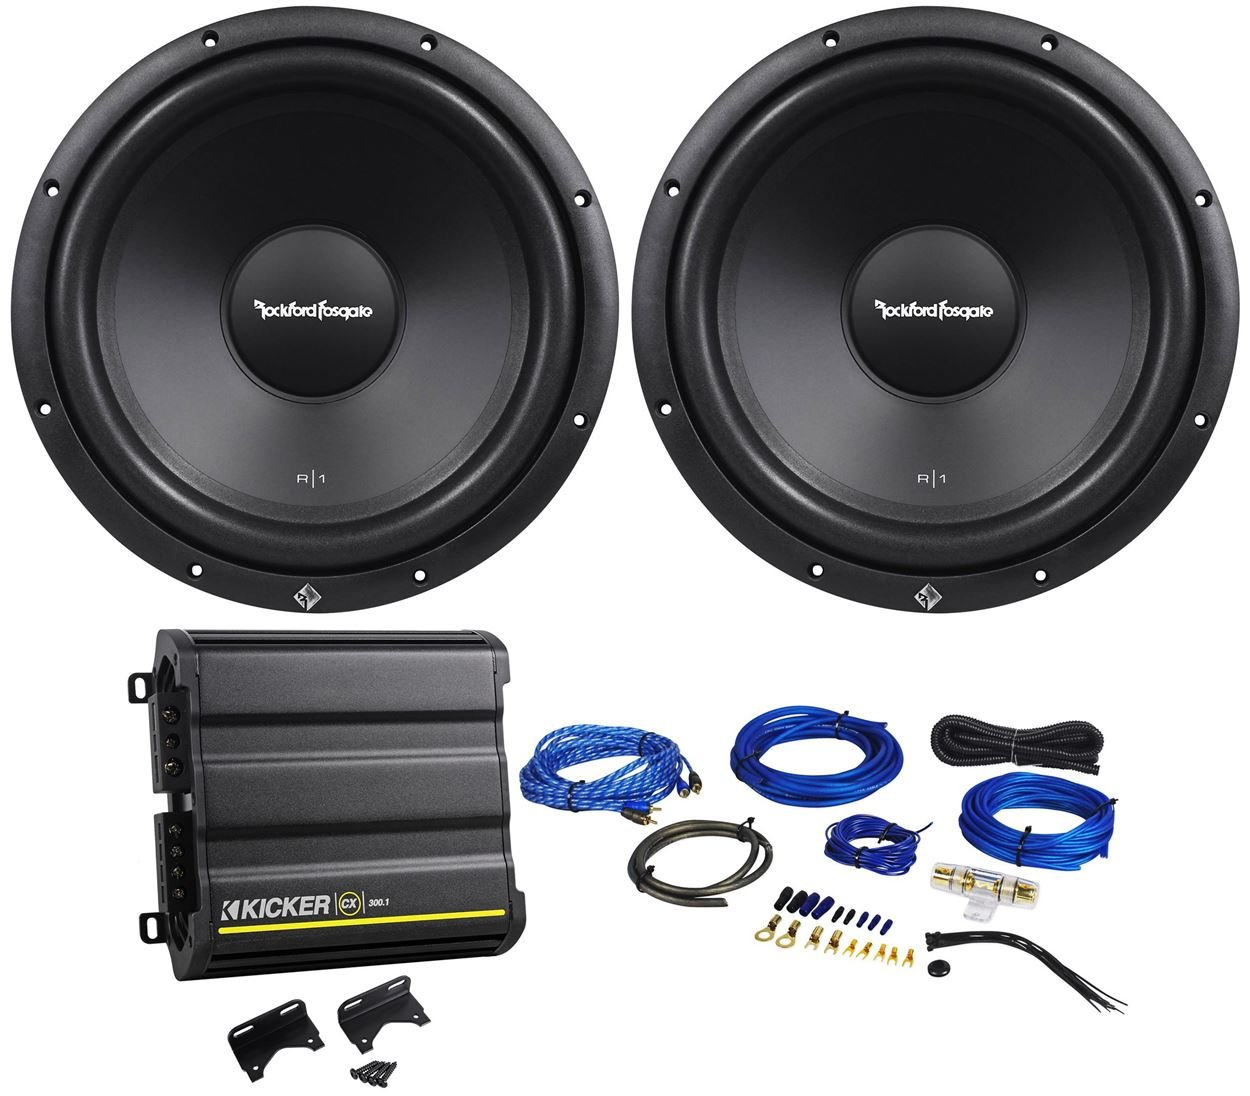 Cheap Car Amplifier Rockford Fosgate Find Stereo Kit 800w Sub 500w 2 Channel Capacitor Wiring Get Quotations R1s4 12 Subwoofers Kicker 43cxa3001